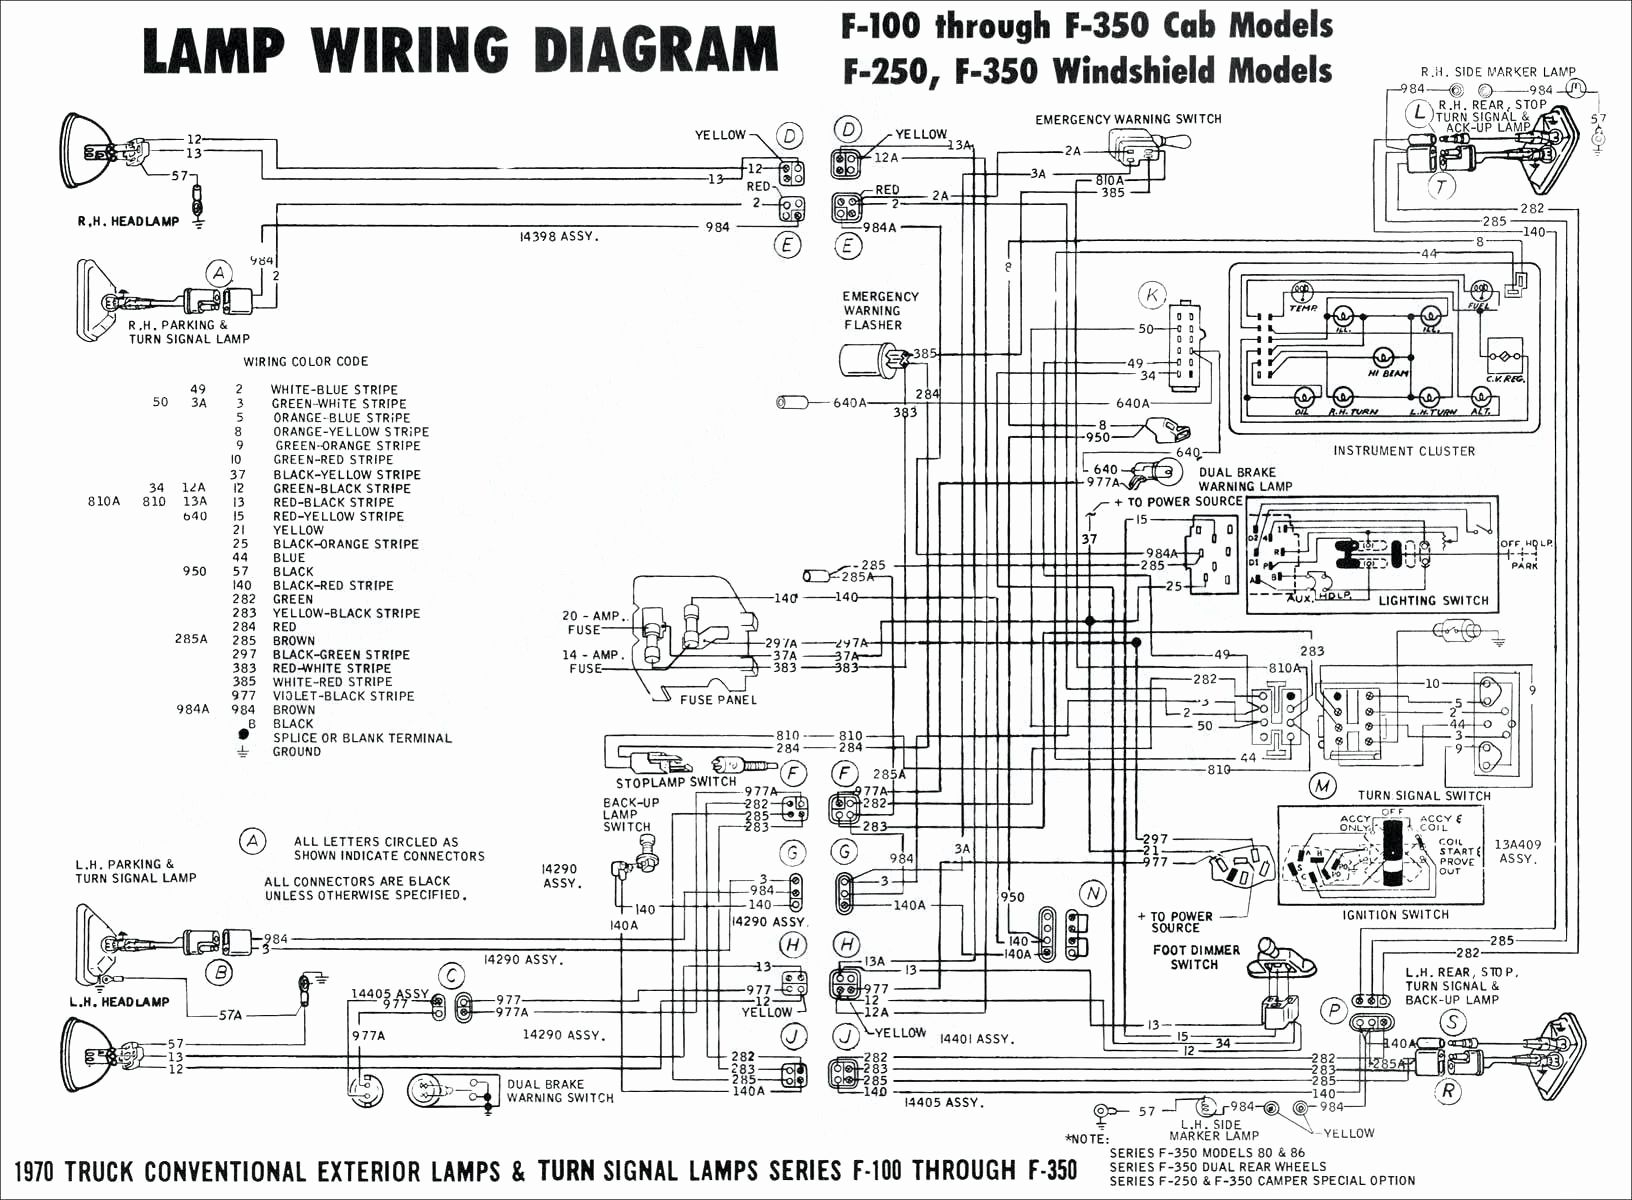 quadrajet choke diagram free download wiring diagram